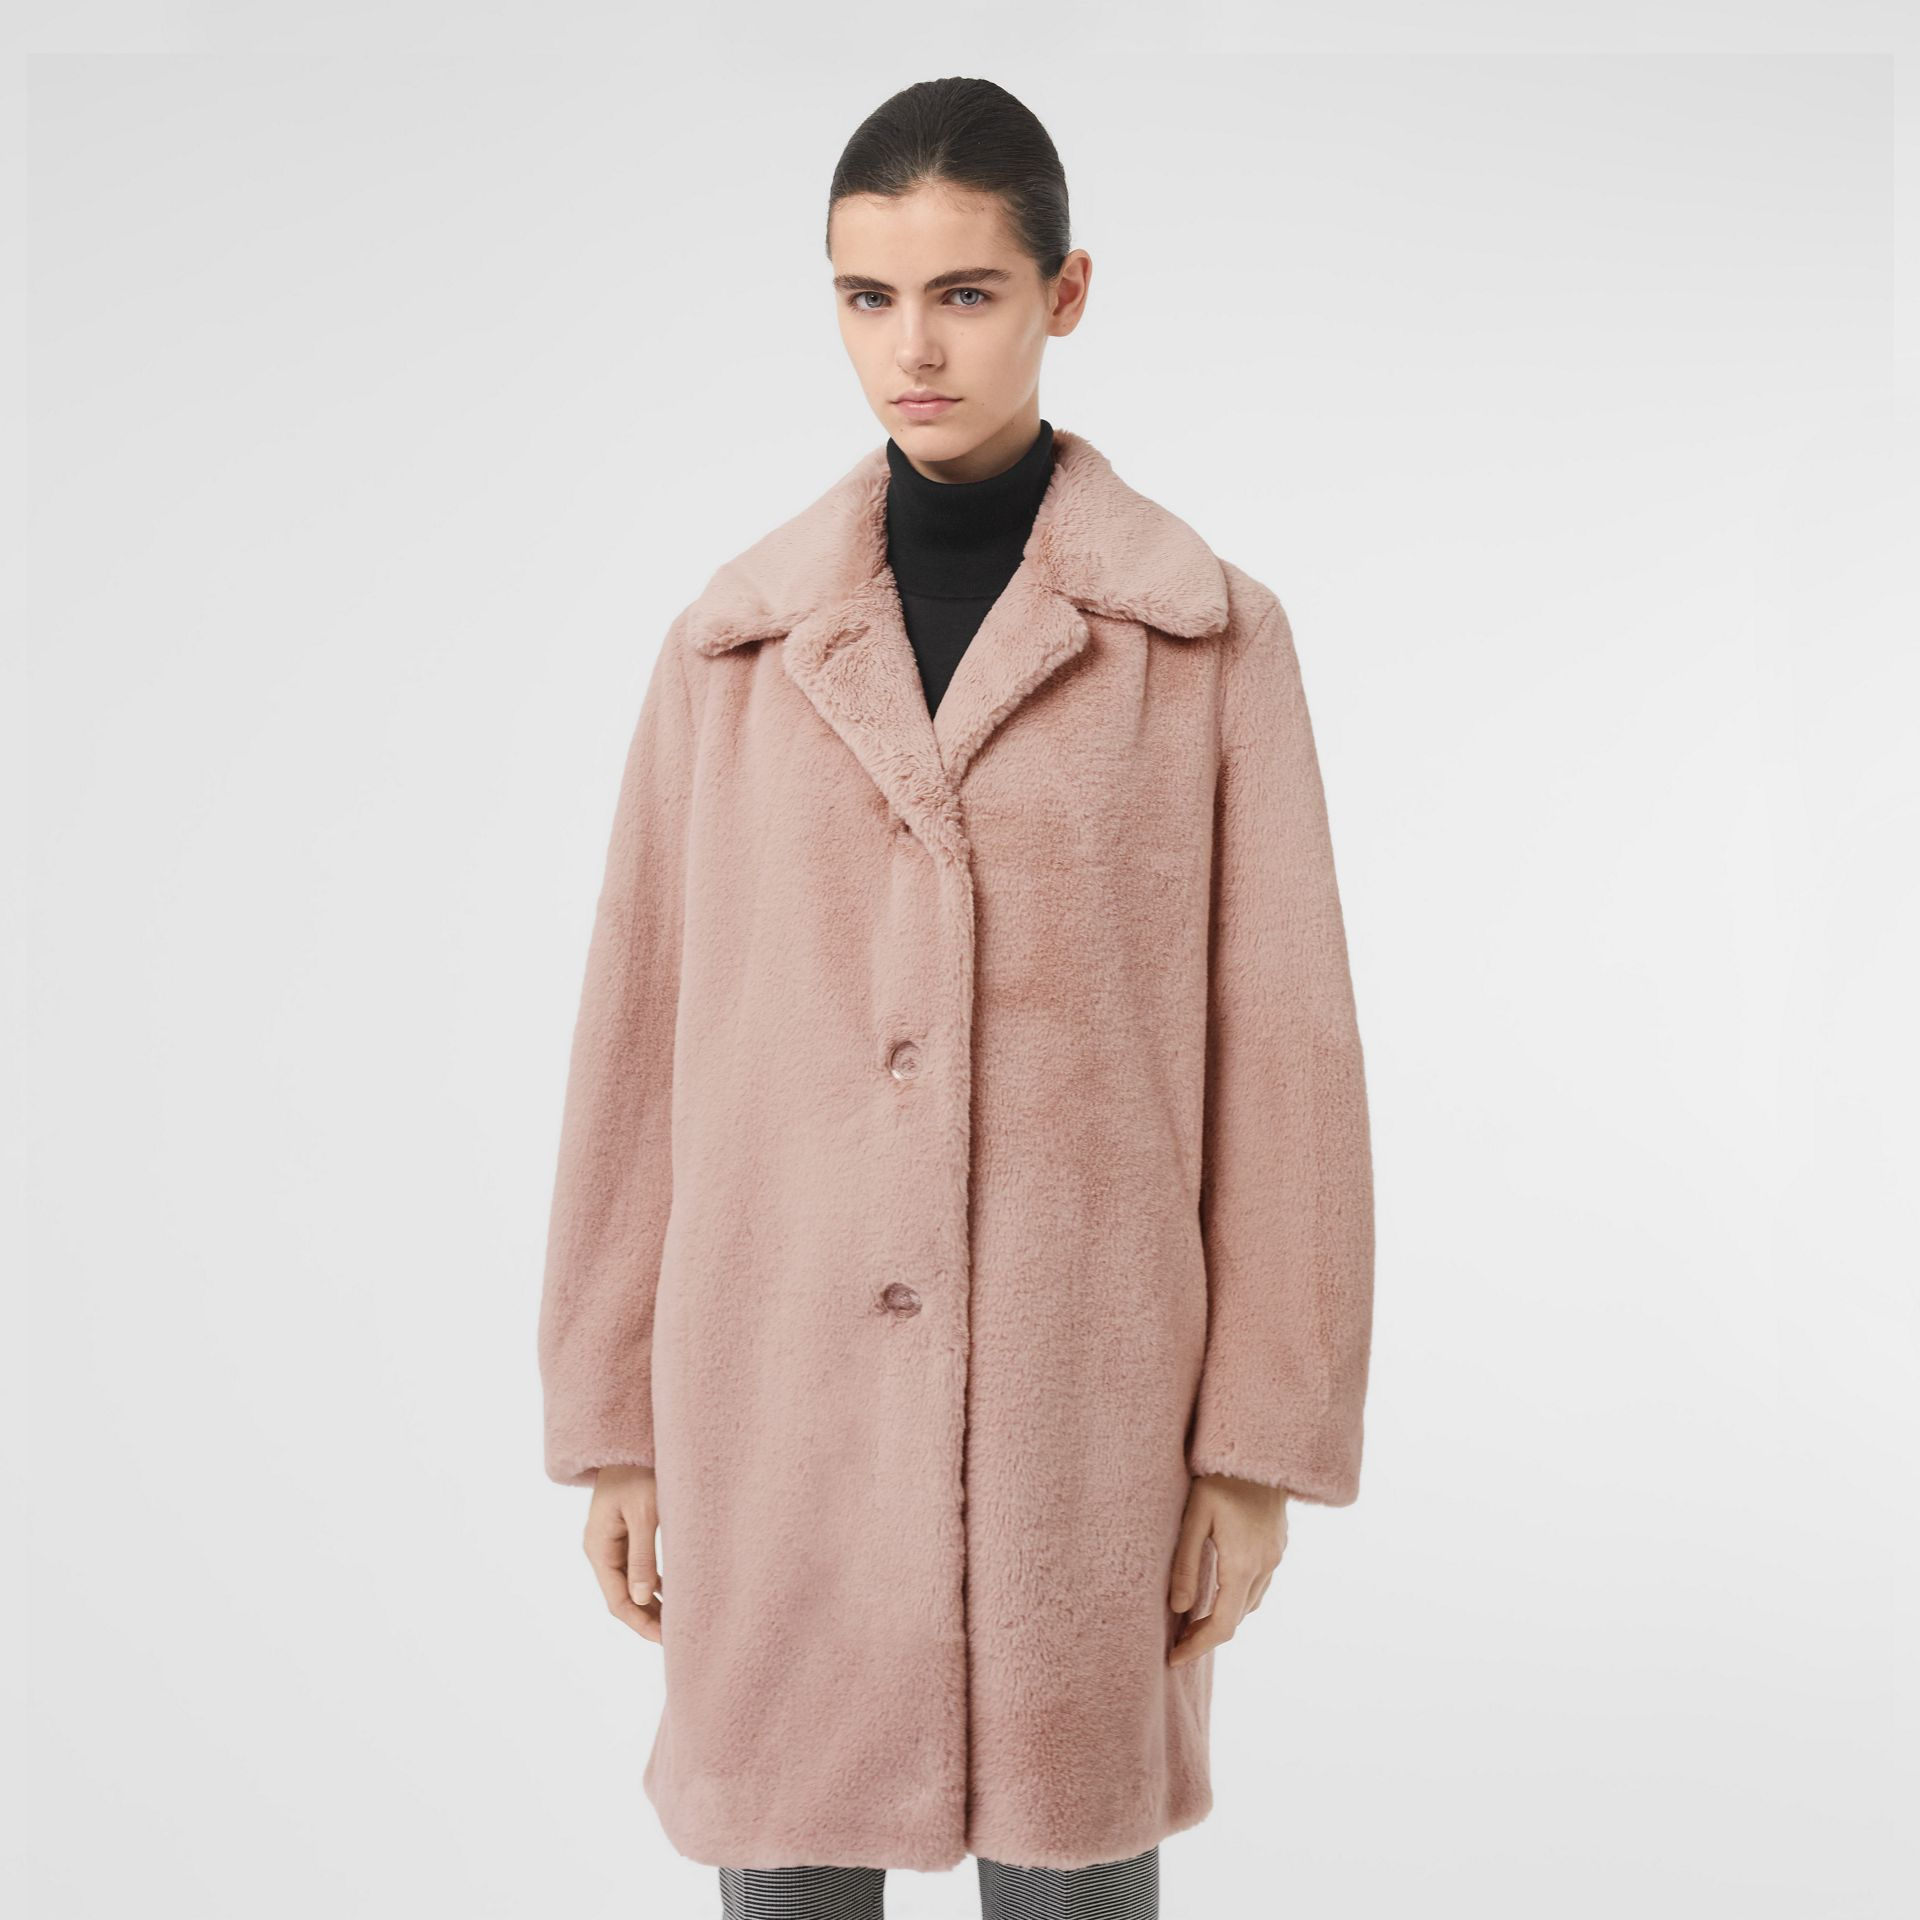 Faux Fur Single-breasted Coat in Pale Blush - Women | Burberry United States - gallery image 5